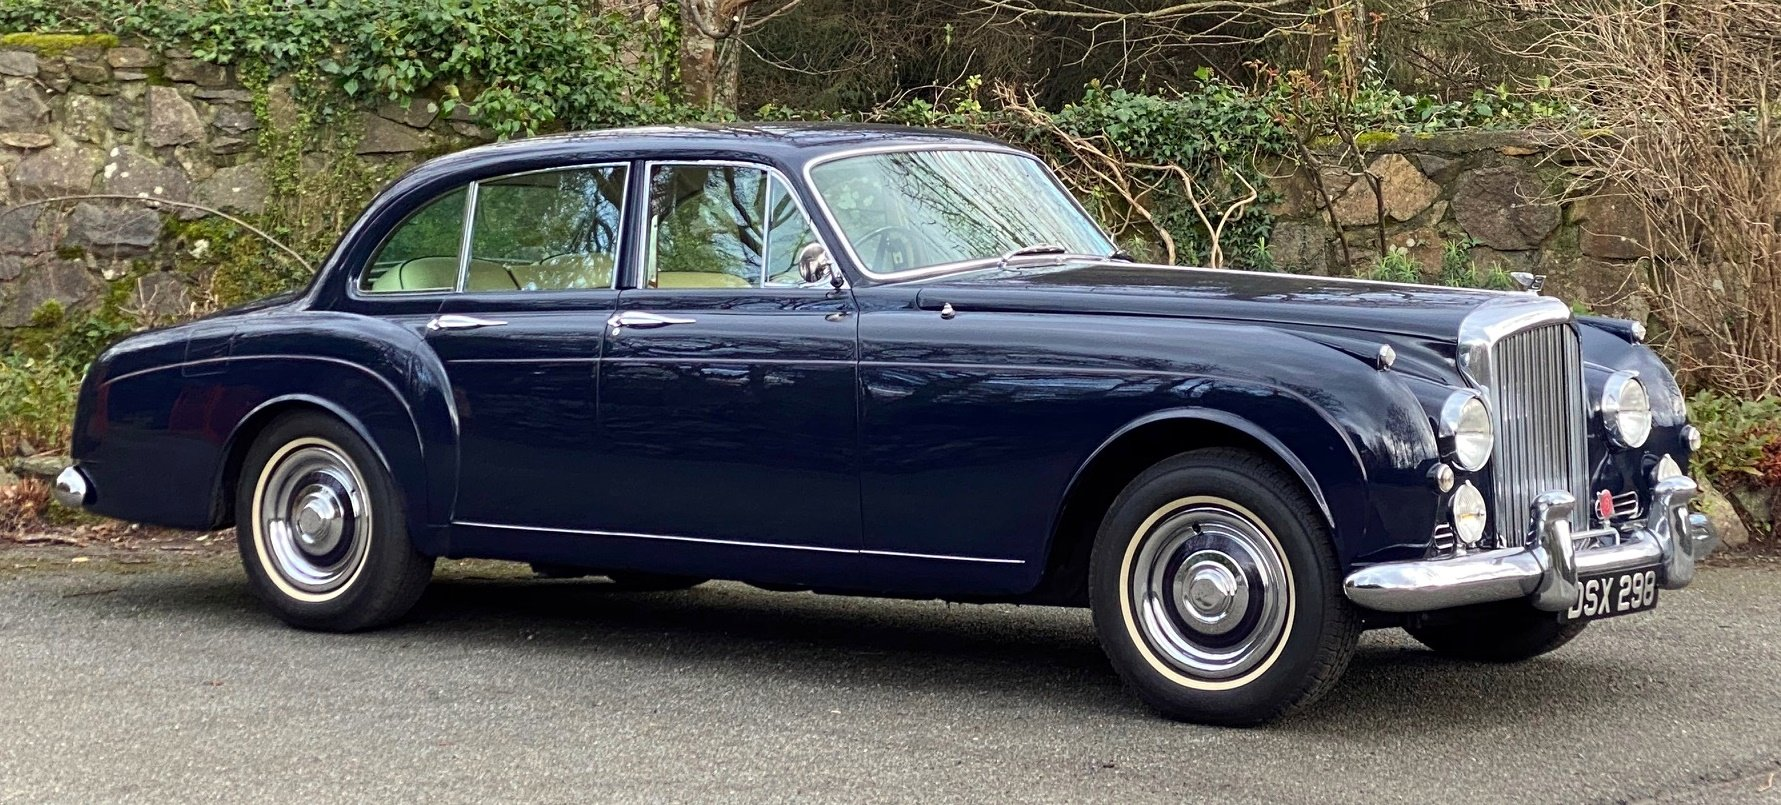 """1959 Bentley S1 Continental H. J. Mulliner """"Flying Spur"""" BC28FM For Sale (picture 5 of 6)"""